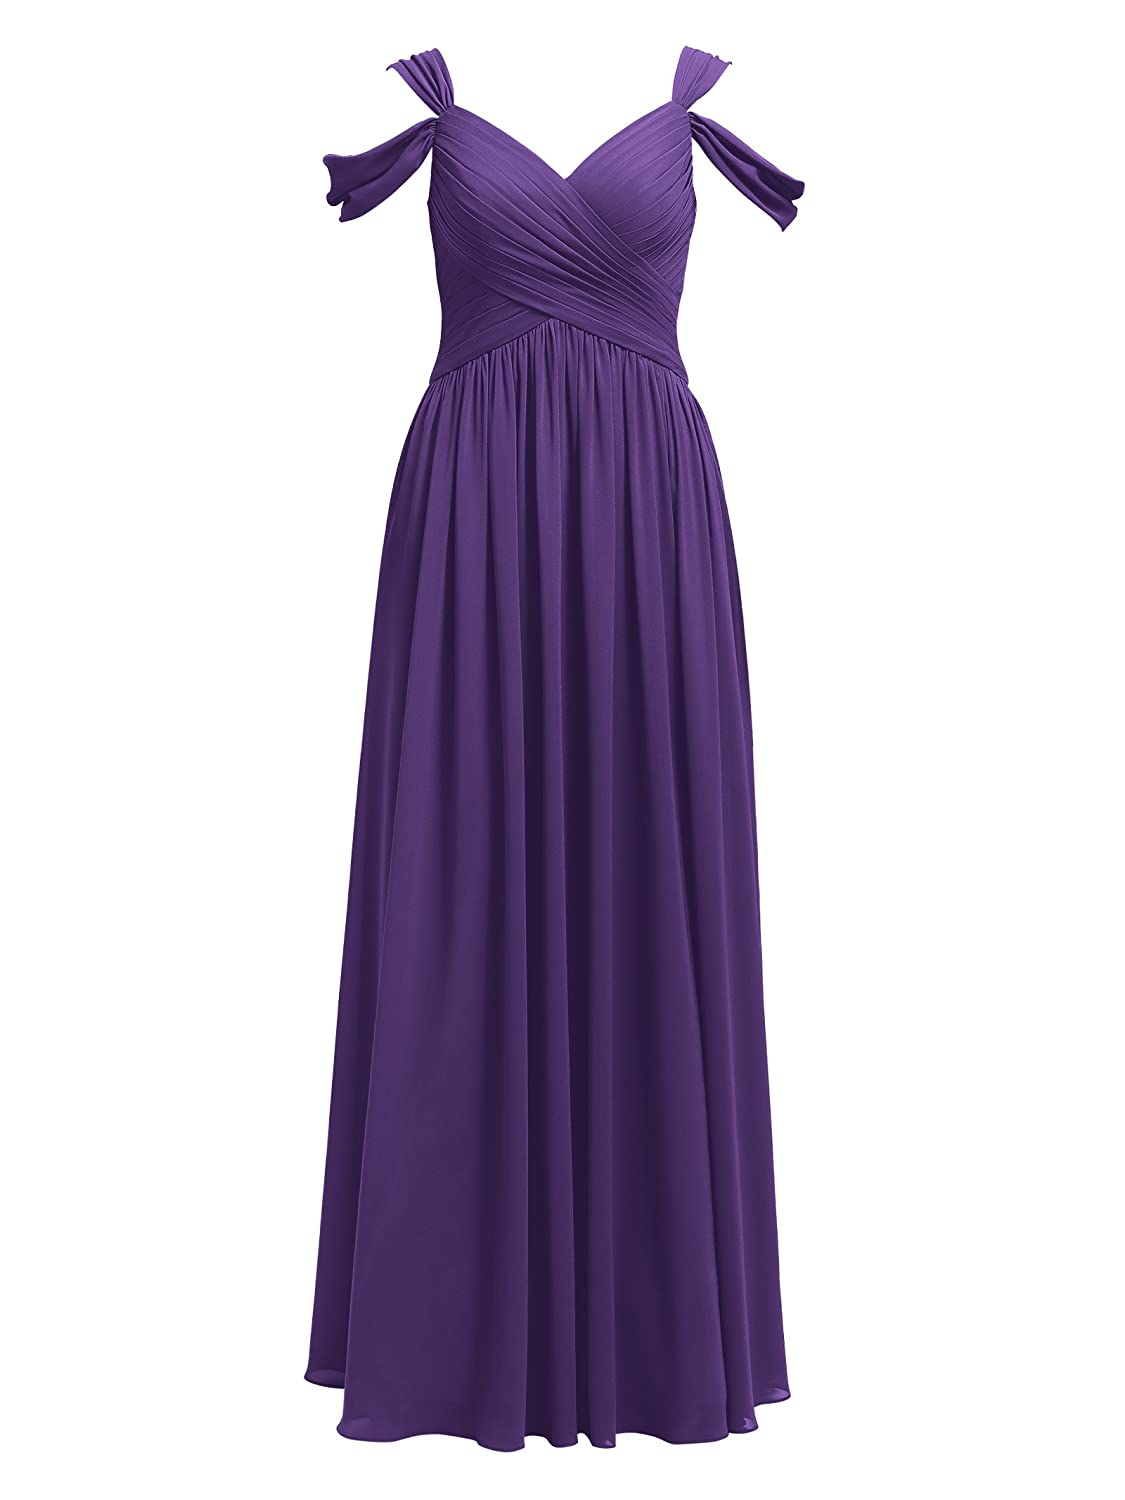 Alicepub Pleated Chiffon Maxi Bridesmaid Dress Long Bridal Party Evening Dresses